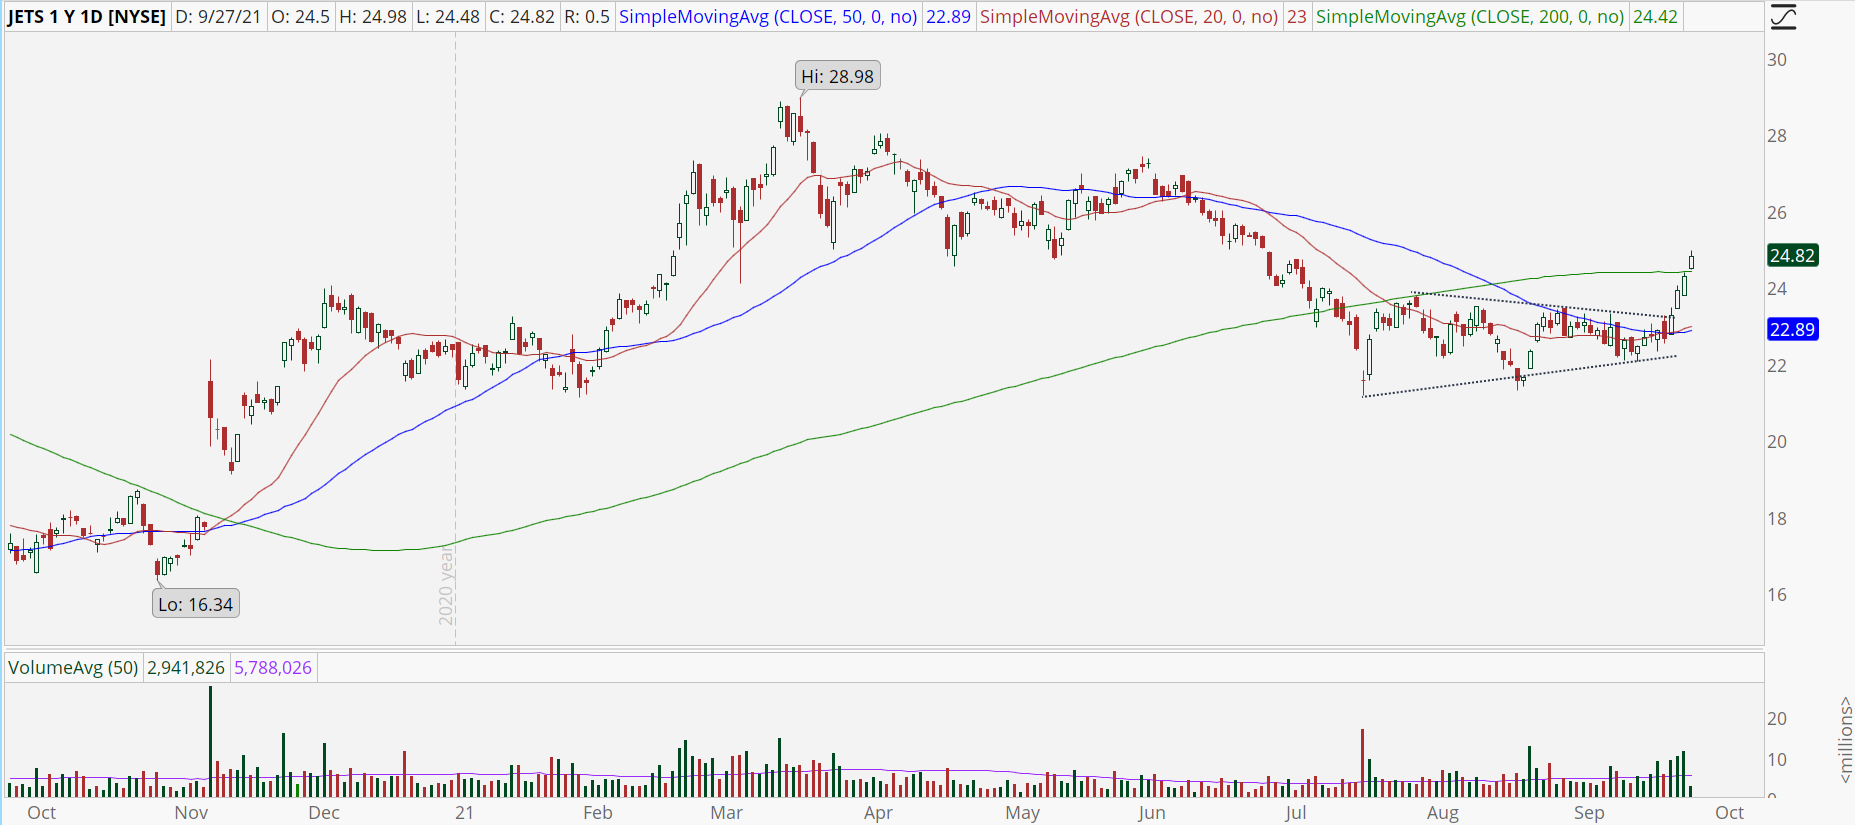 Global Jets ETF (JETS) stock chart with triangle breakout.